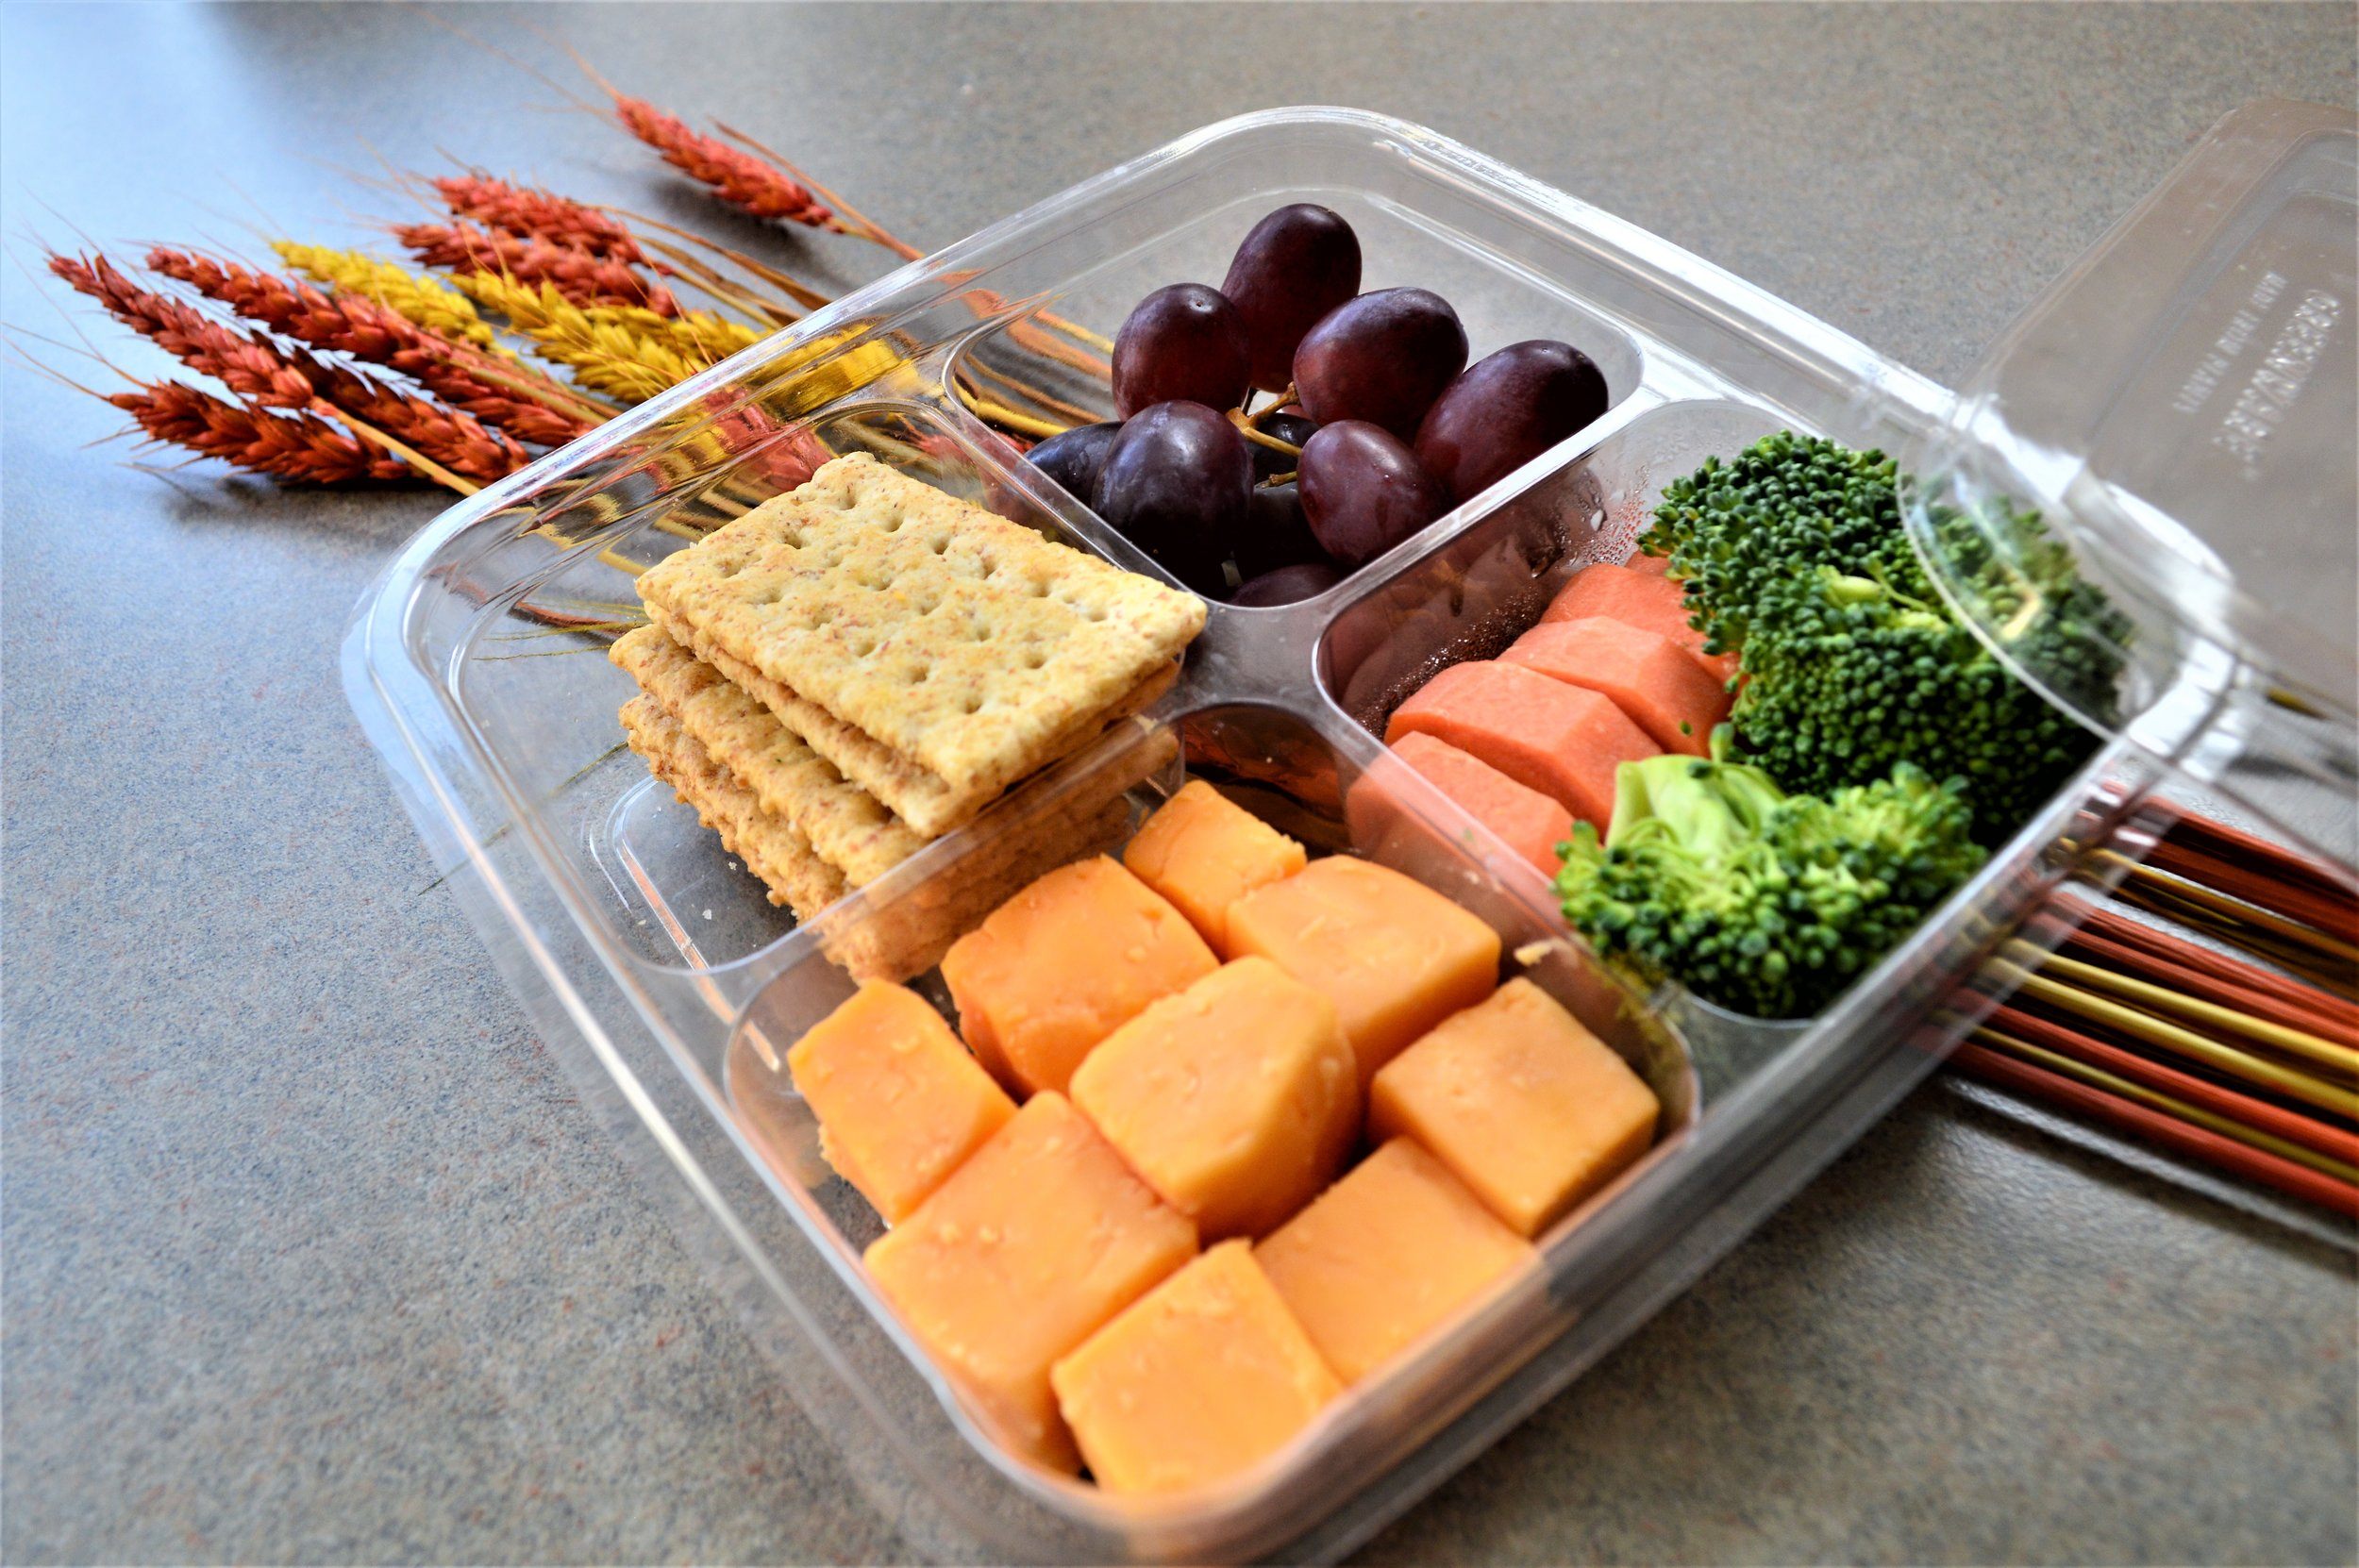 Dash - We understand that classes, work, and athletics can make an already busy schedule even busier. That's why Dash provides a variety of hot and cold grab & go items such as yogurt parfaits, protein boxes, sandwiches and wraps, and much more.